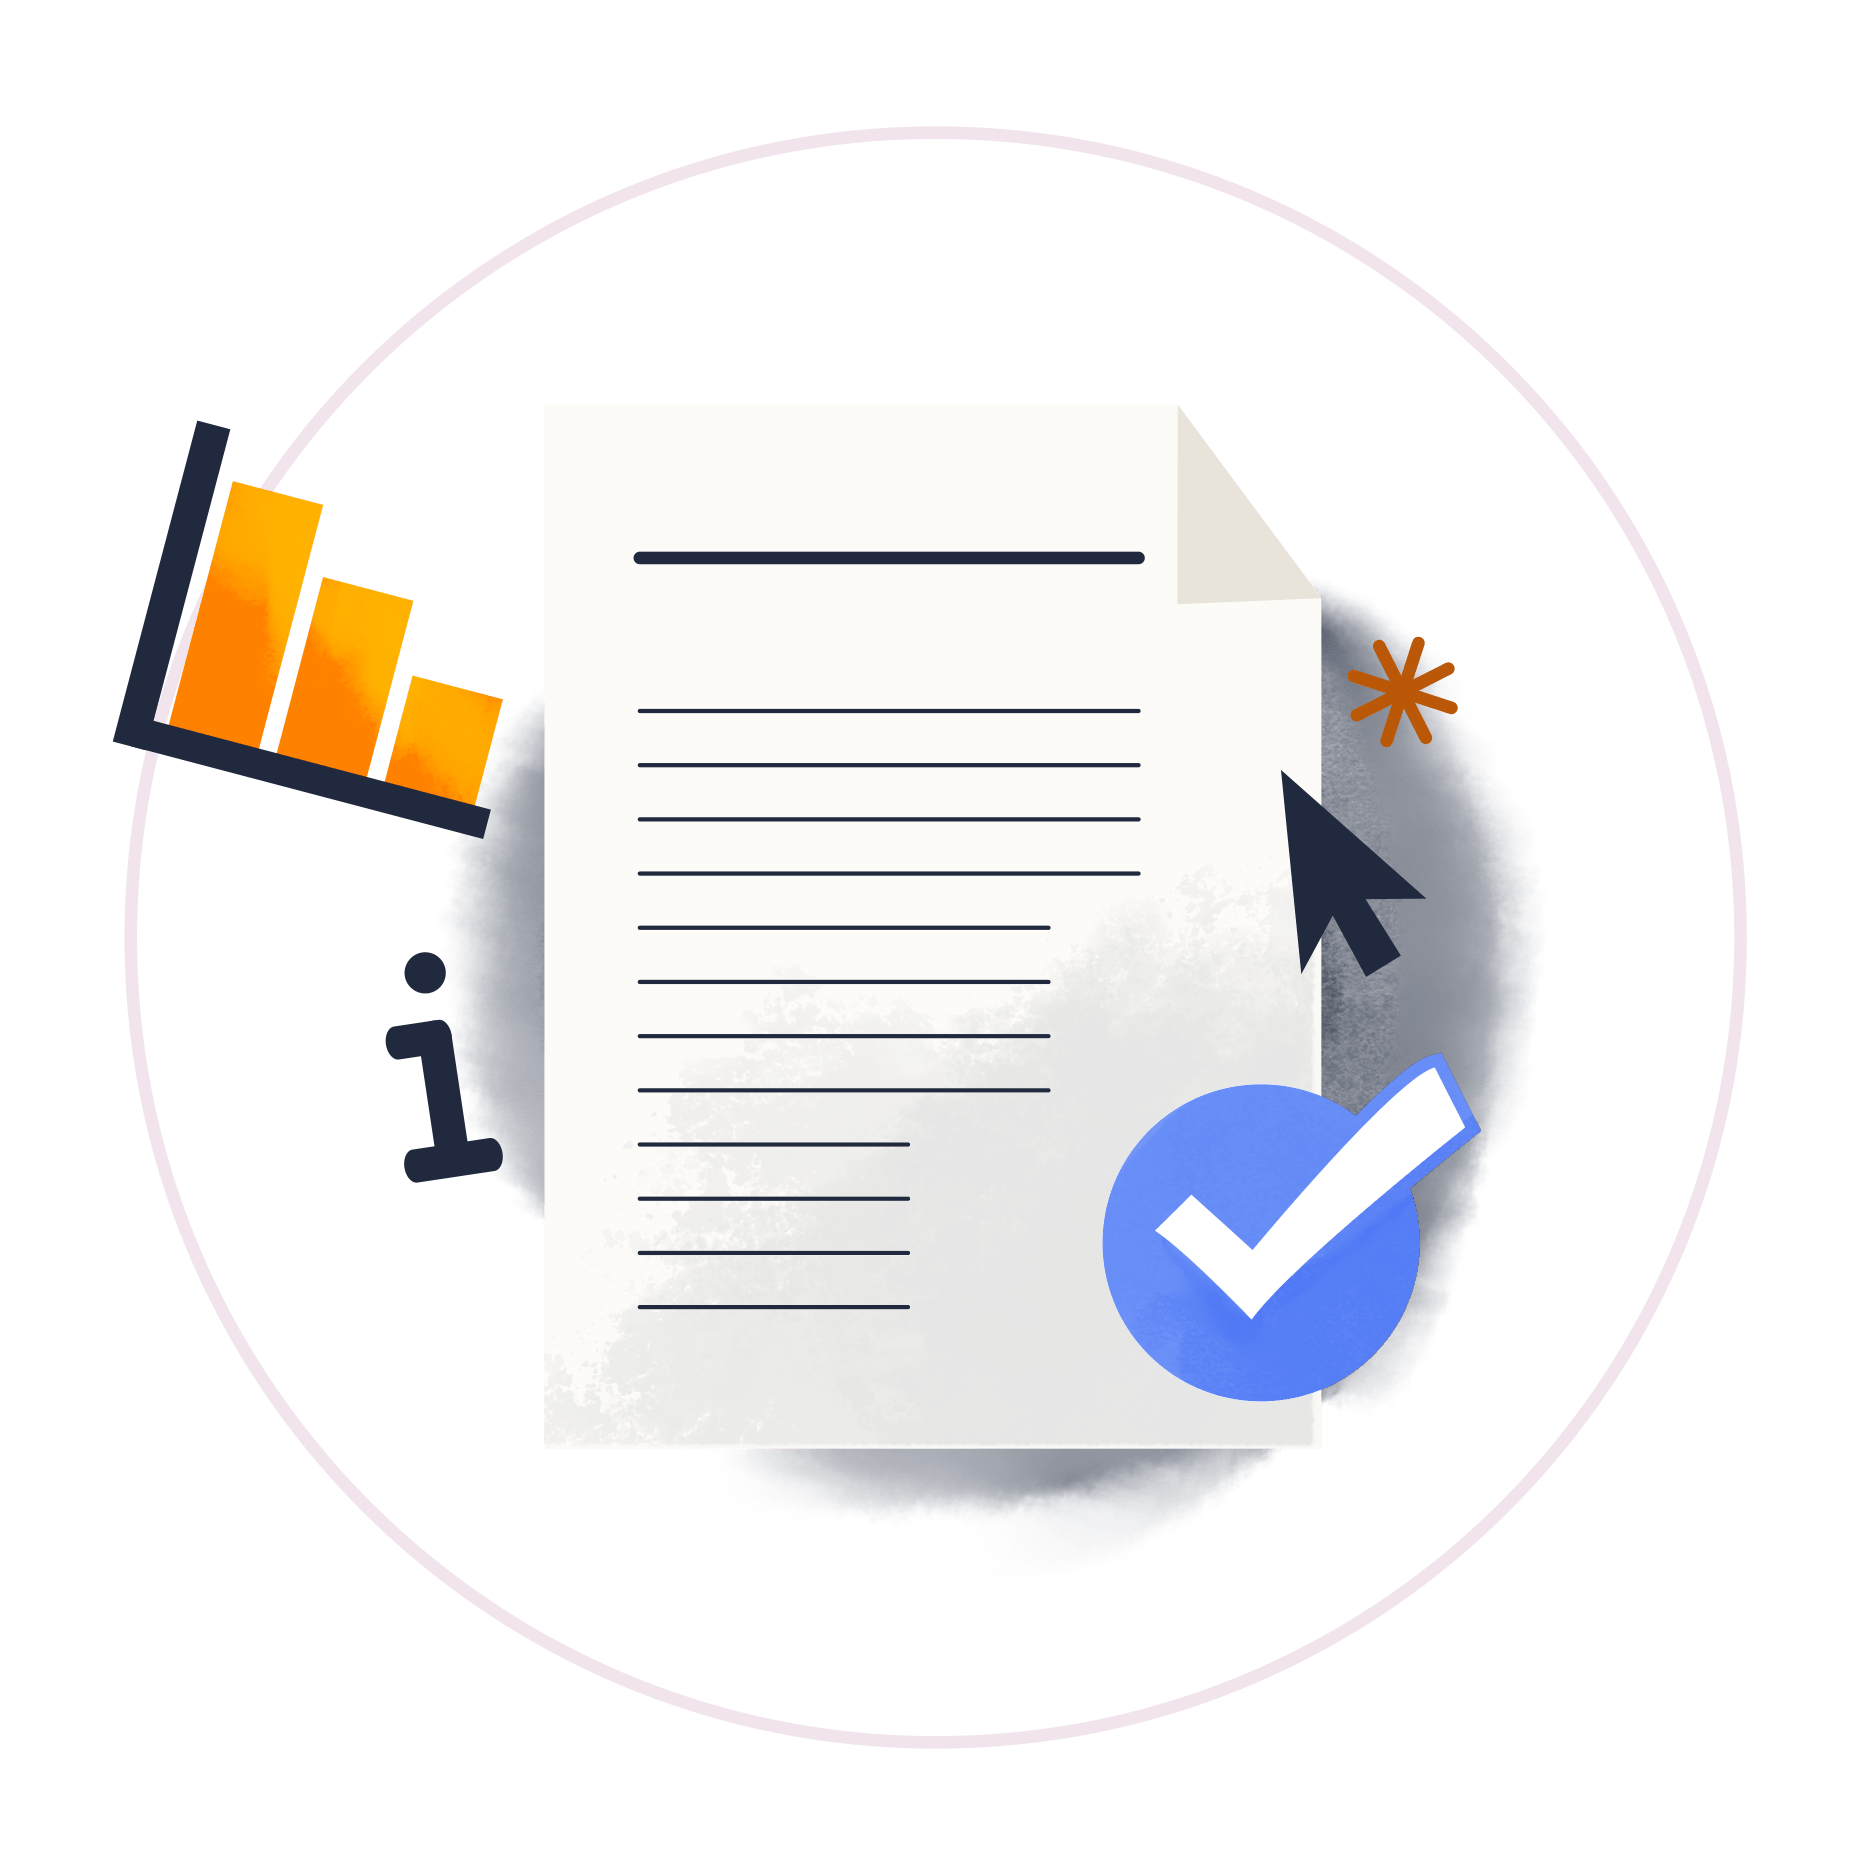 Illustration for terms and conditions